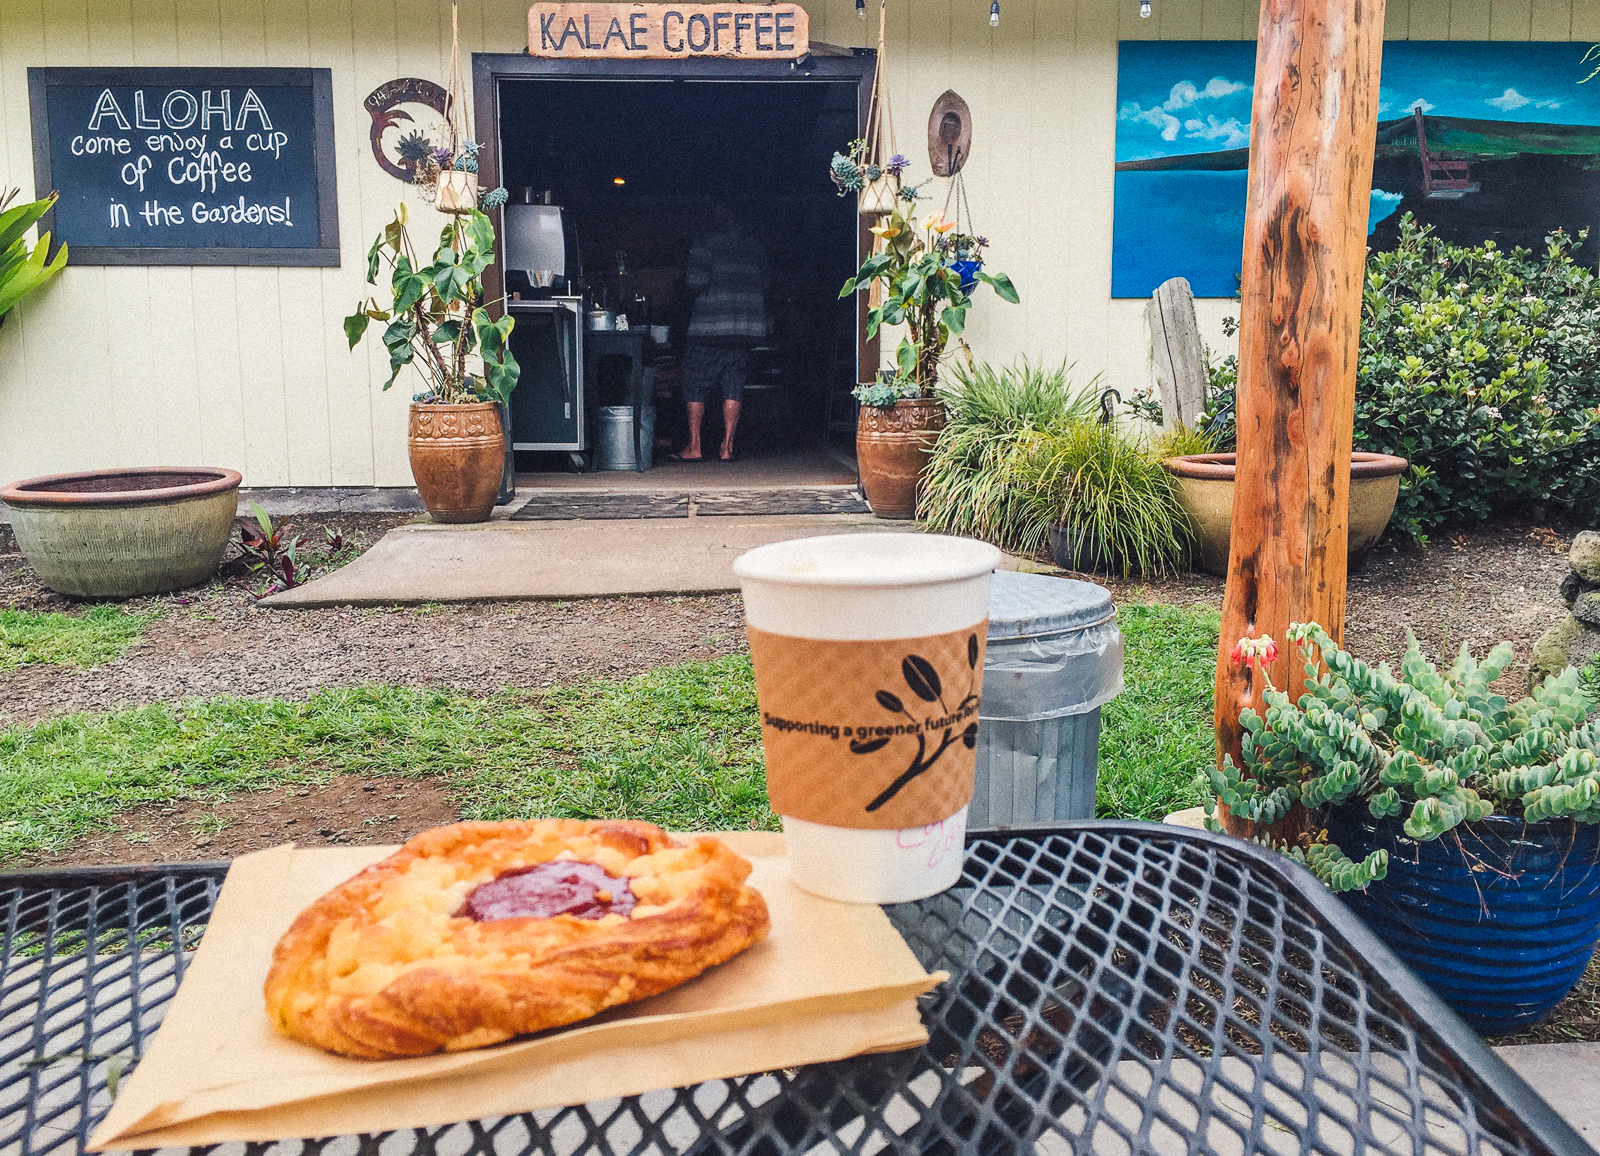 Kalae Coffee Shop, The Most Southernmost Coffee shop in the U.S.